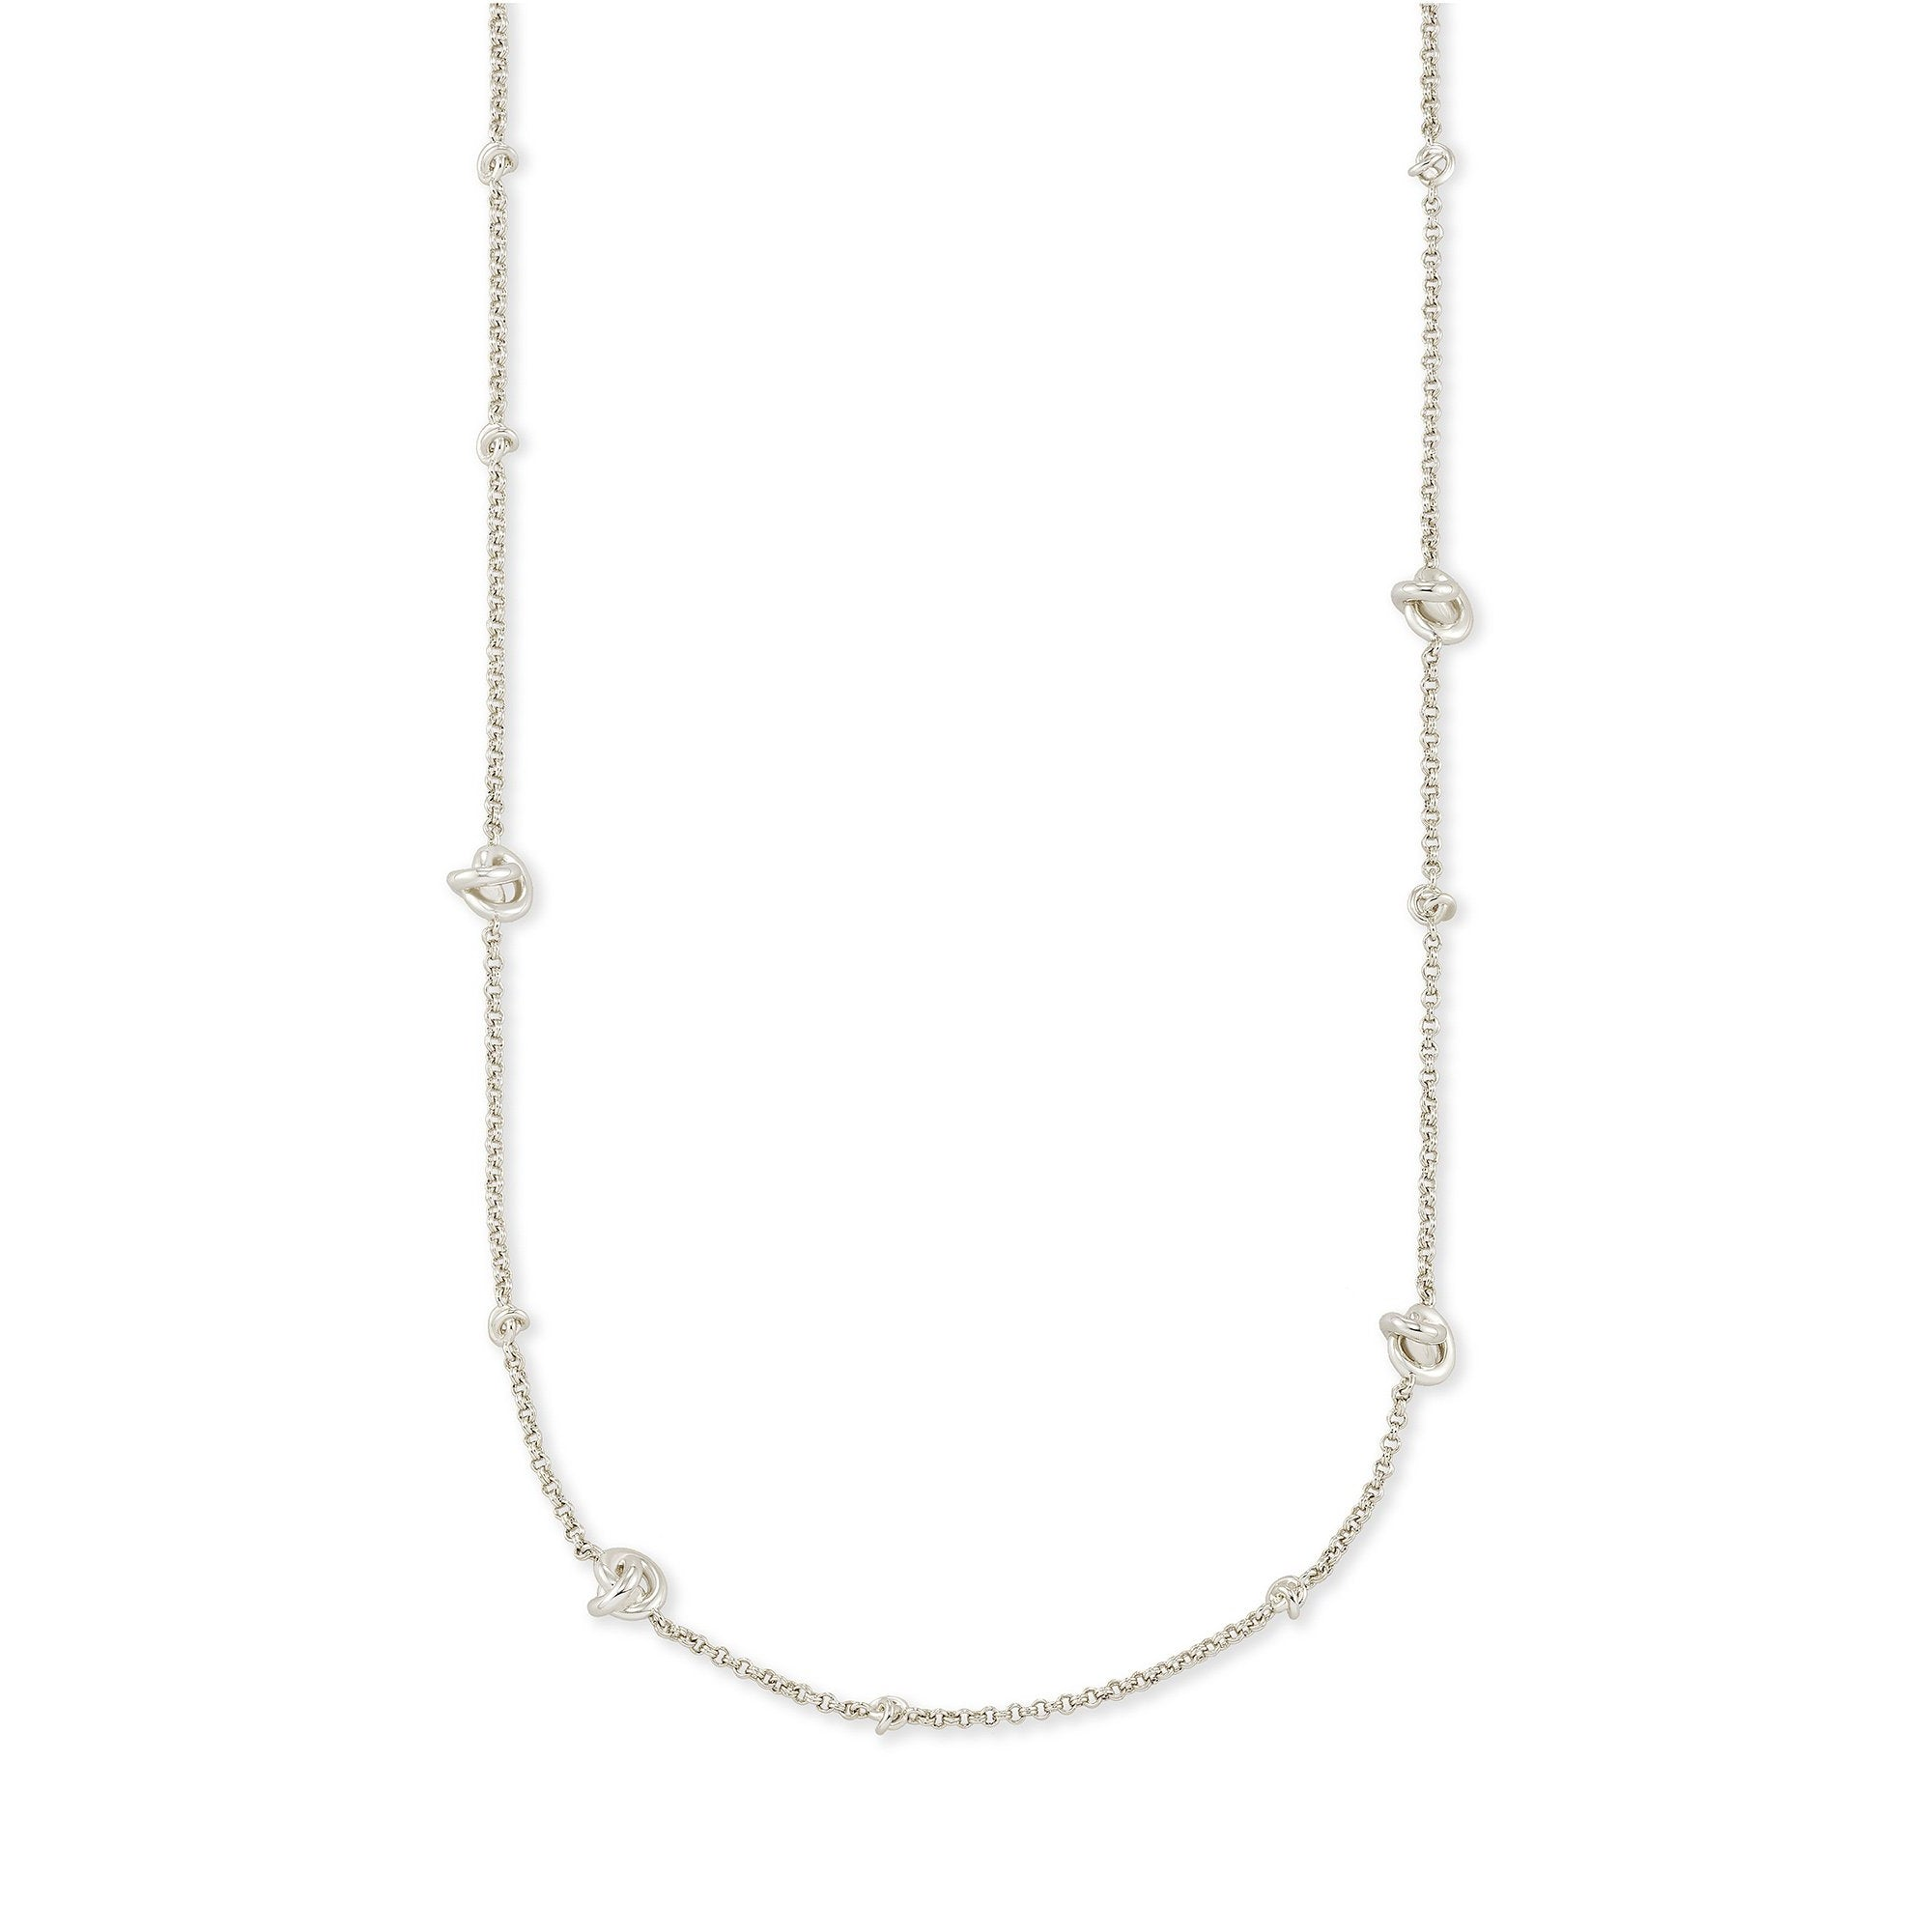 Presleigh Adjustable Necklace in Silver